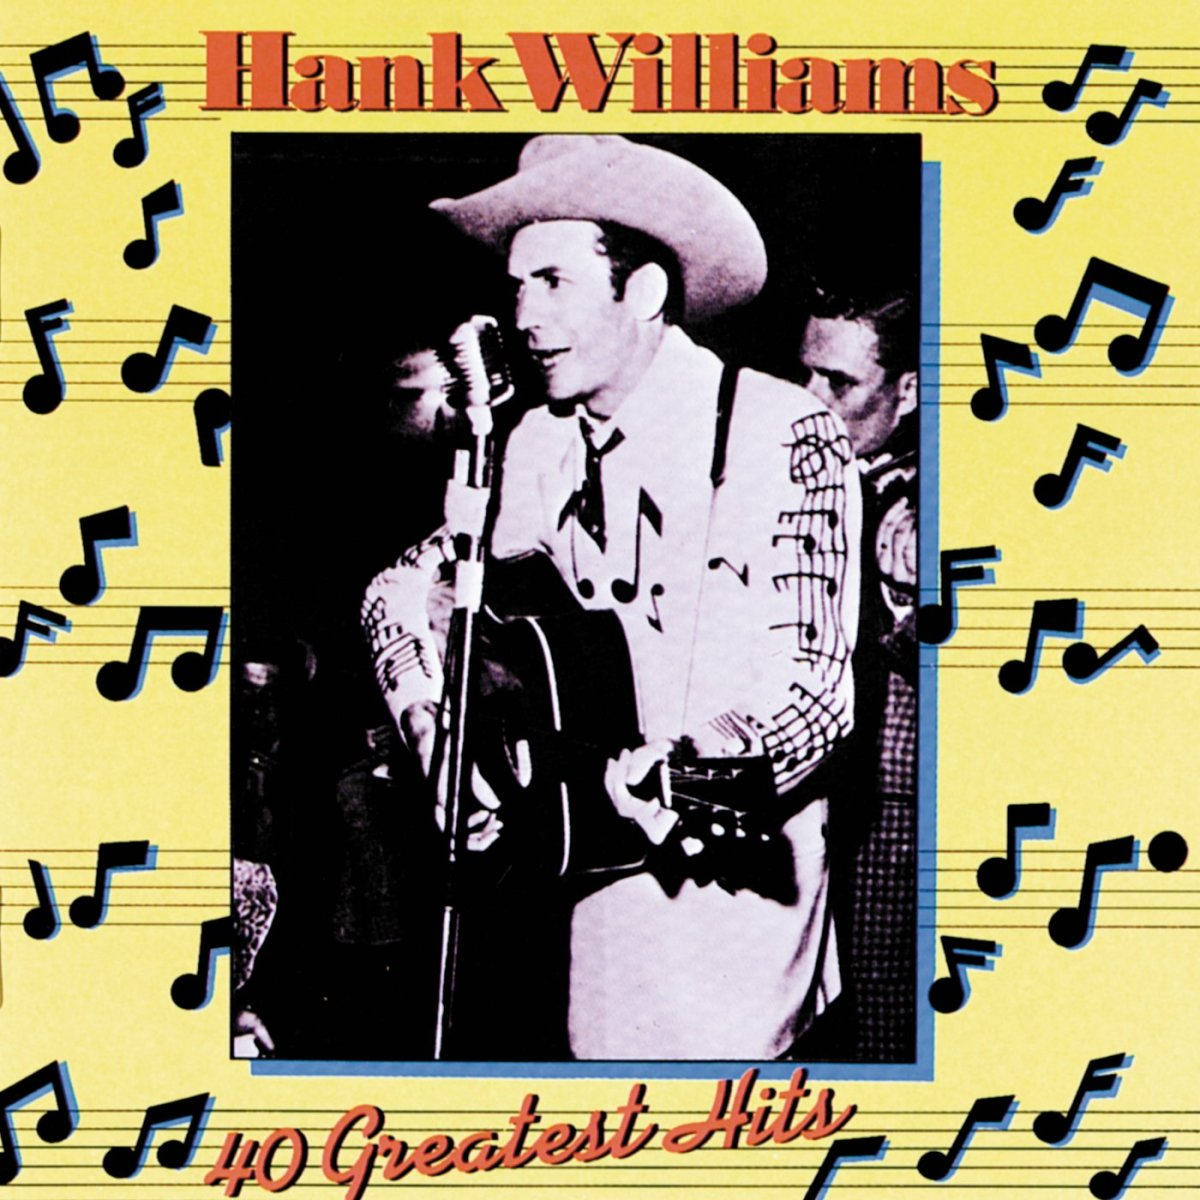 A Story About Dave And Hank Williams, Sr.